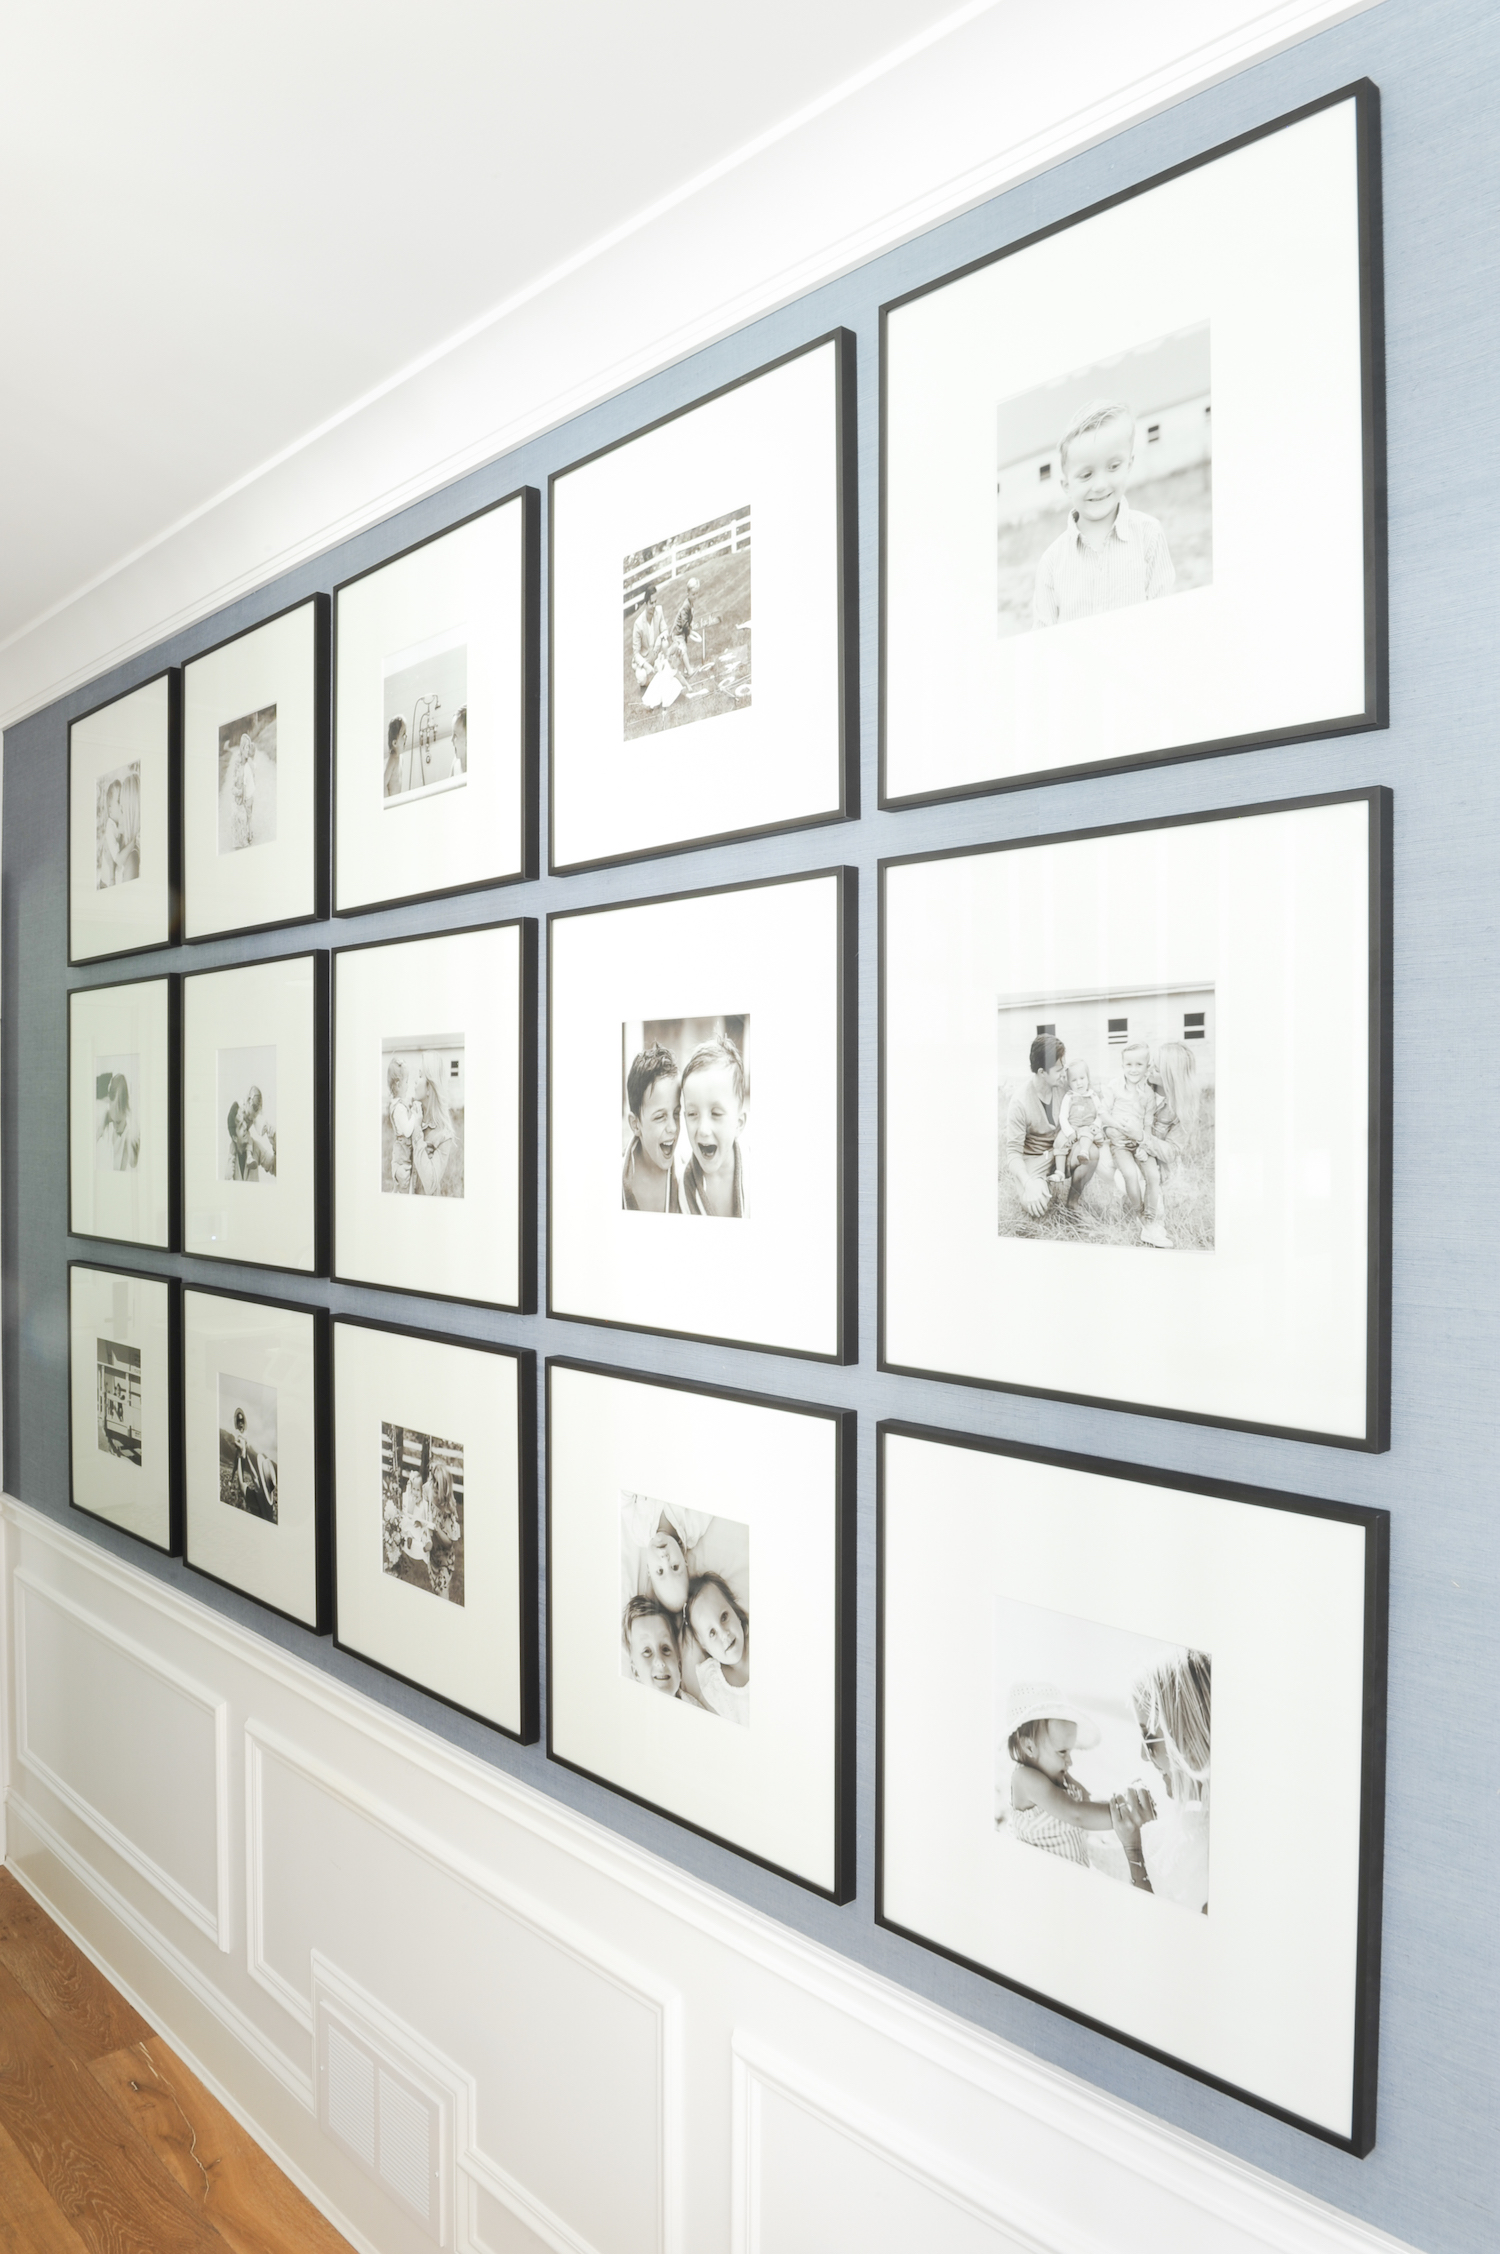 How to create the perfect gallery wall monika hibbs needless to say we love it ha not only that but the pop of color in our home looks so great too im so happy how it all turned out jeuxipadfo Gallery